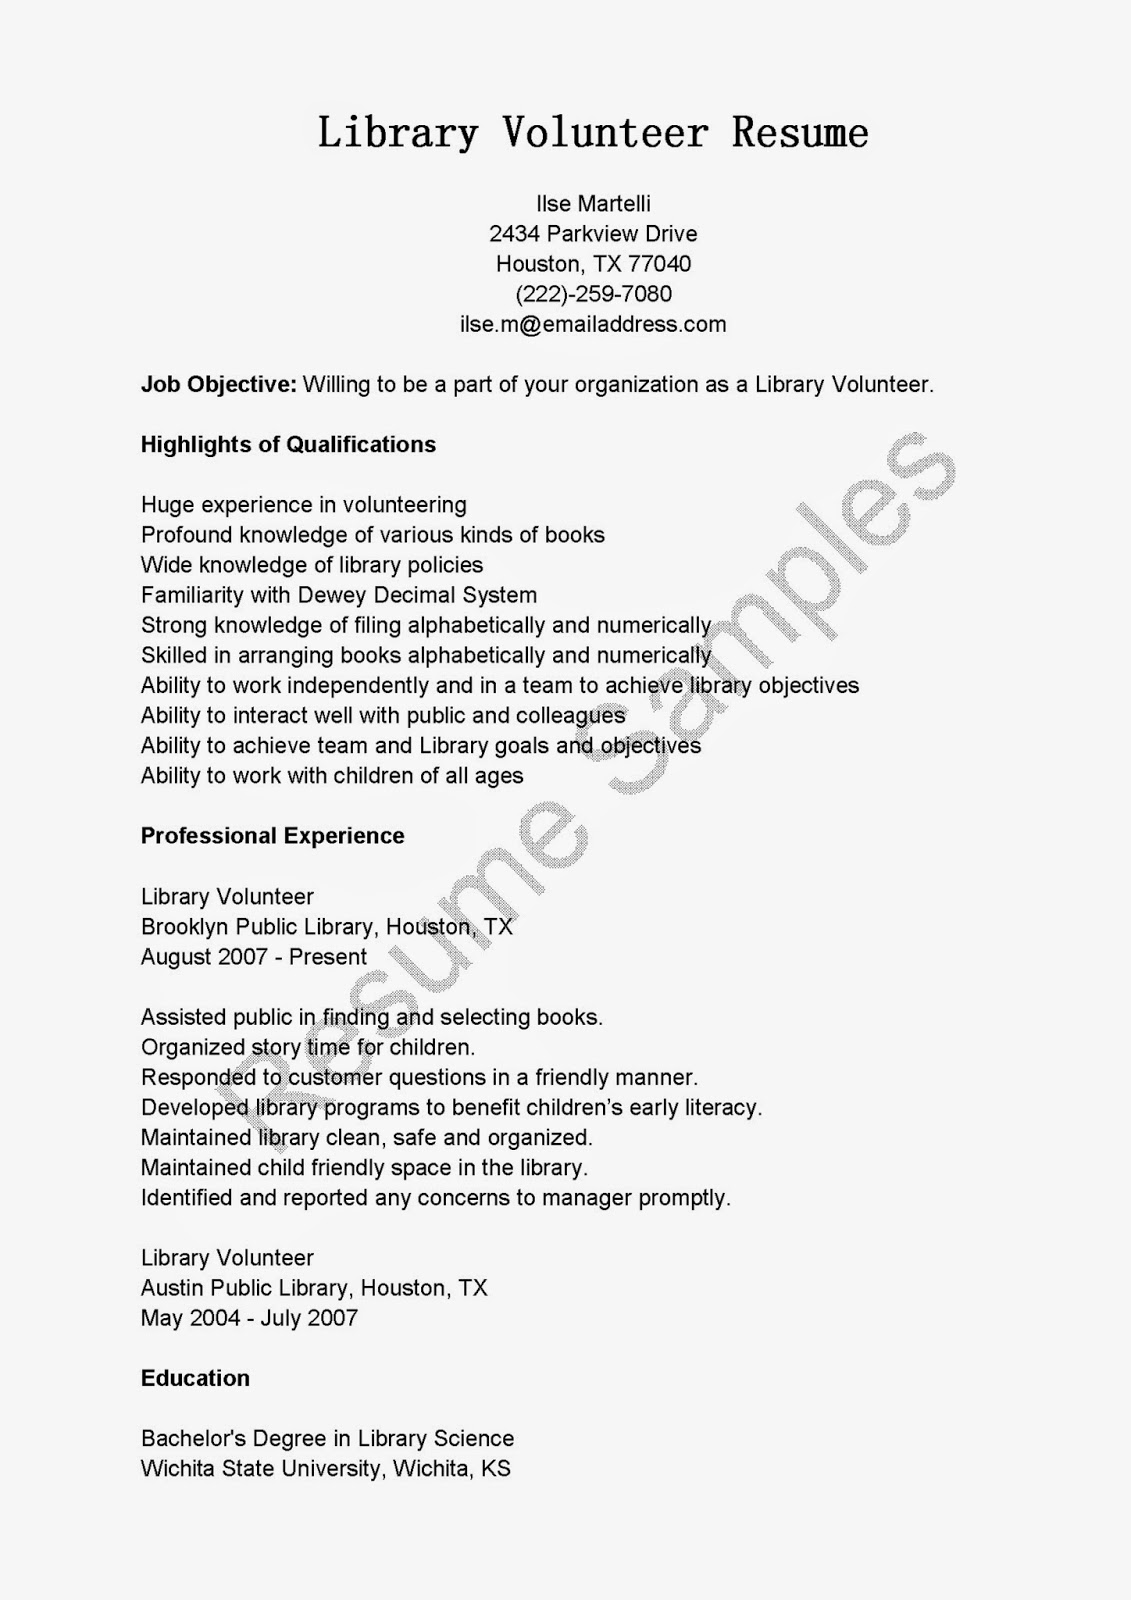 Resume template for volunteer work romeondinez resume template for volunteer work resume template for volunteer work best yelopaper Images